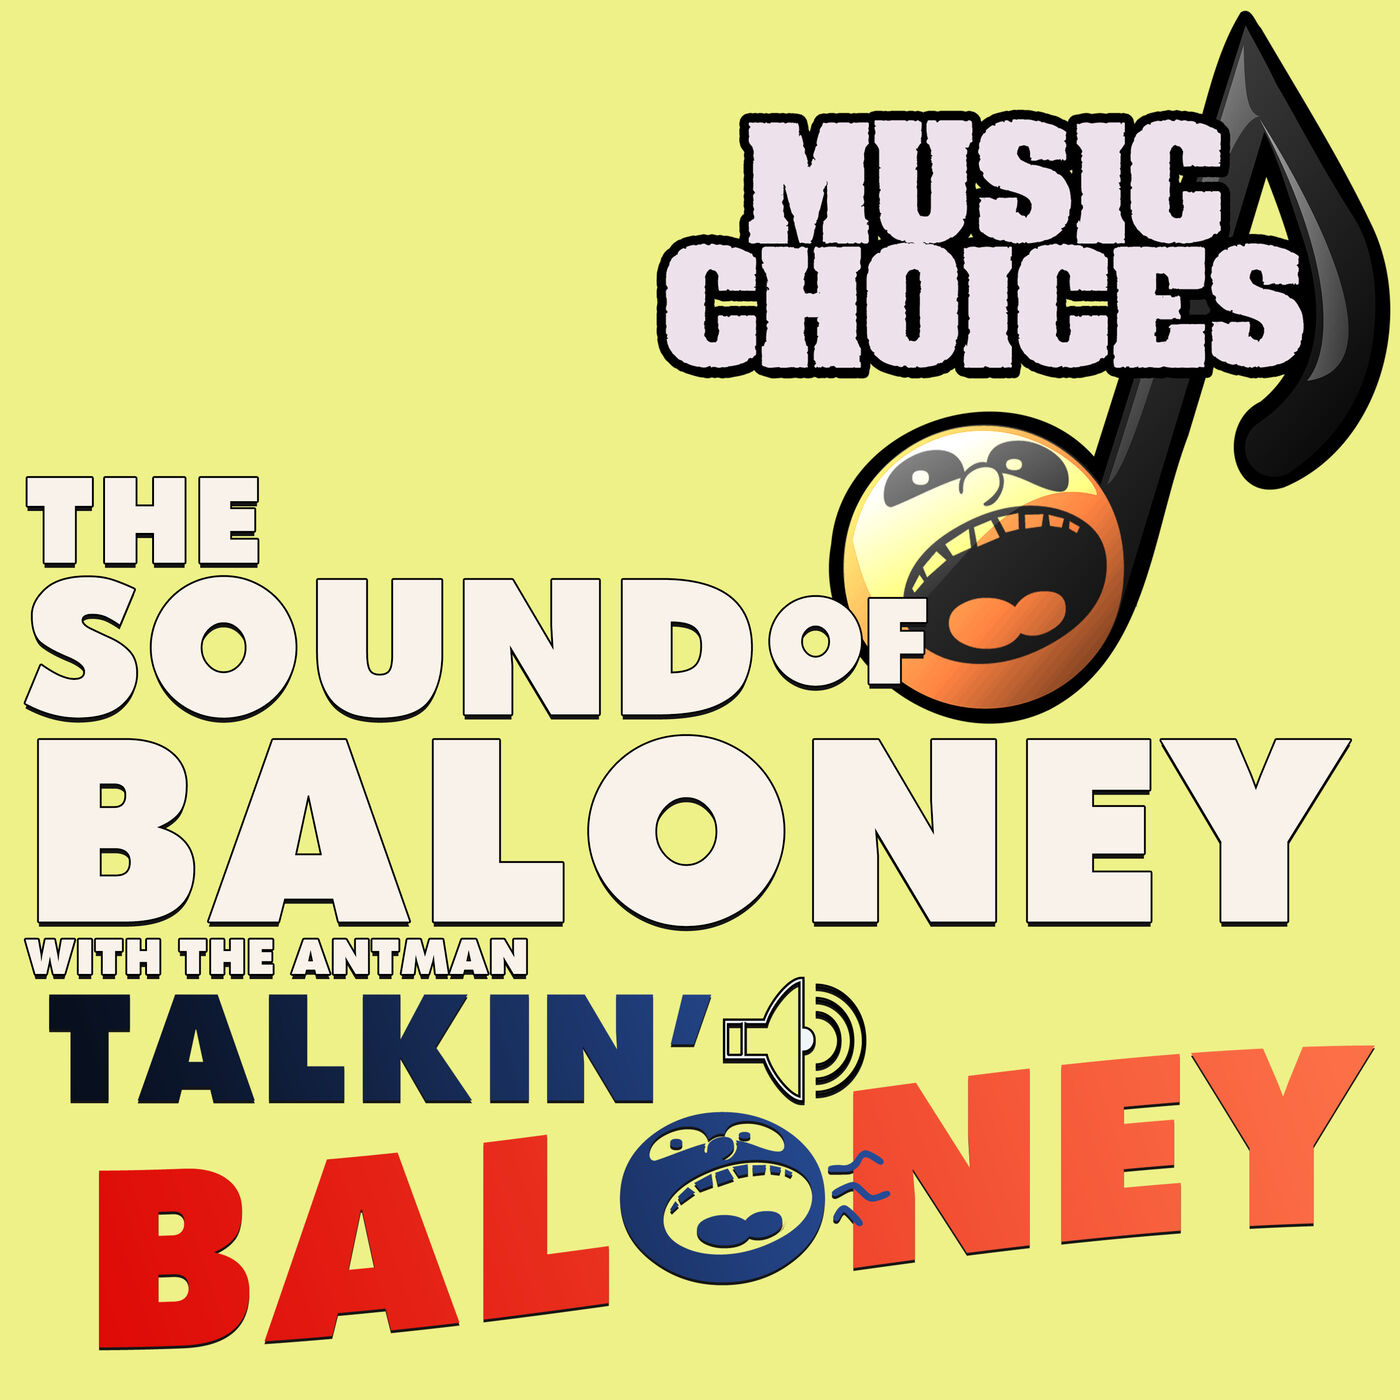 The Sound of Baloney - with the Antman